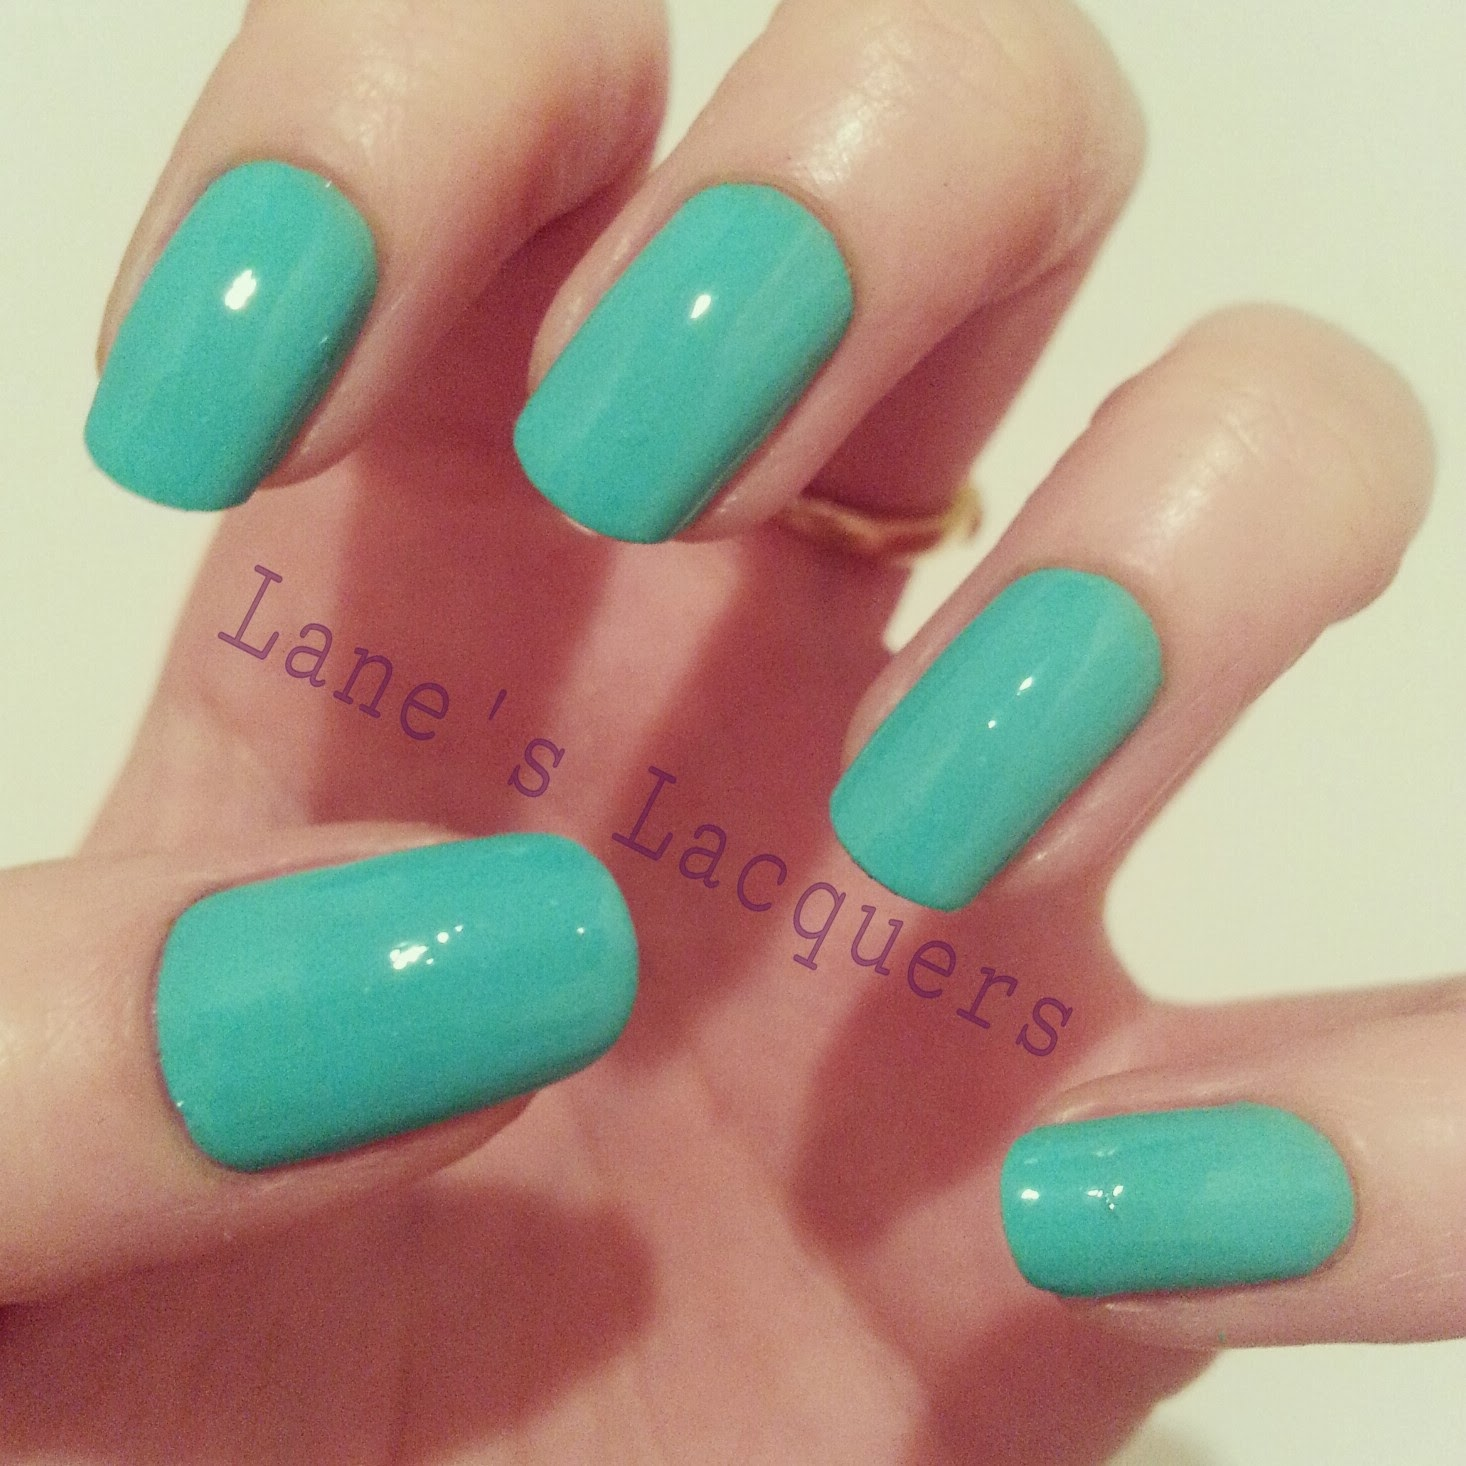 models-own-hypergels-turquoise-glint-manicure